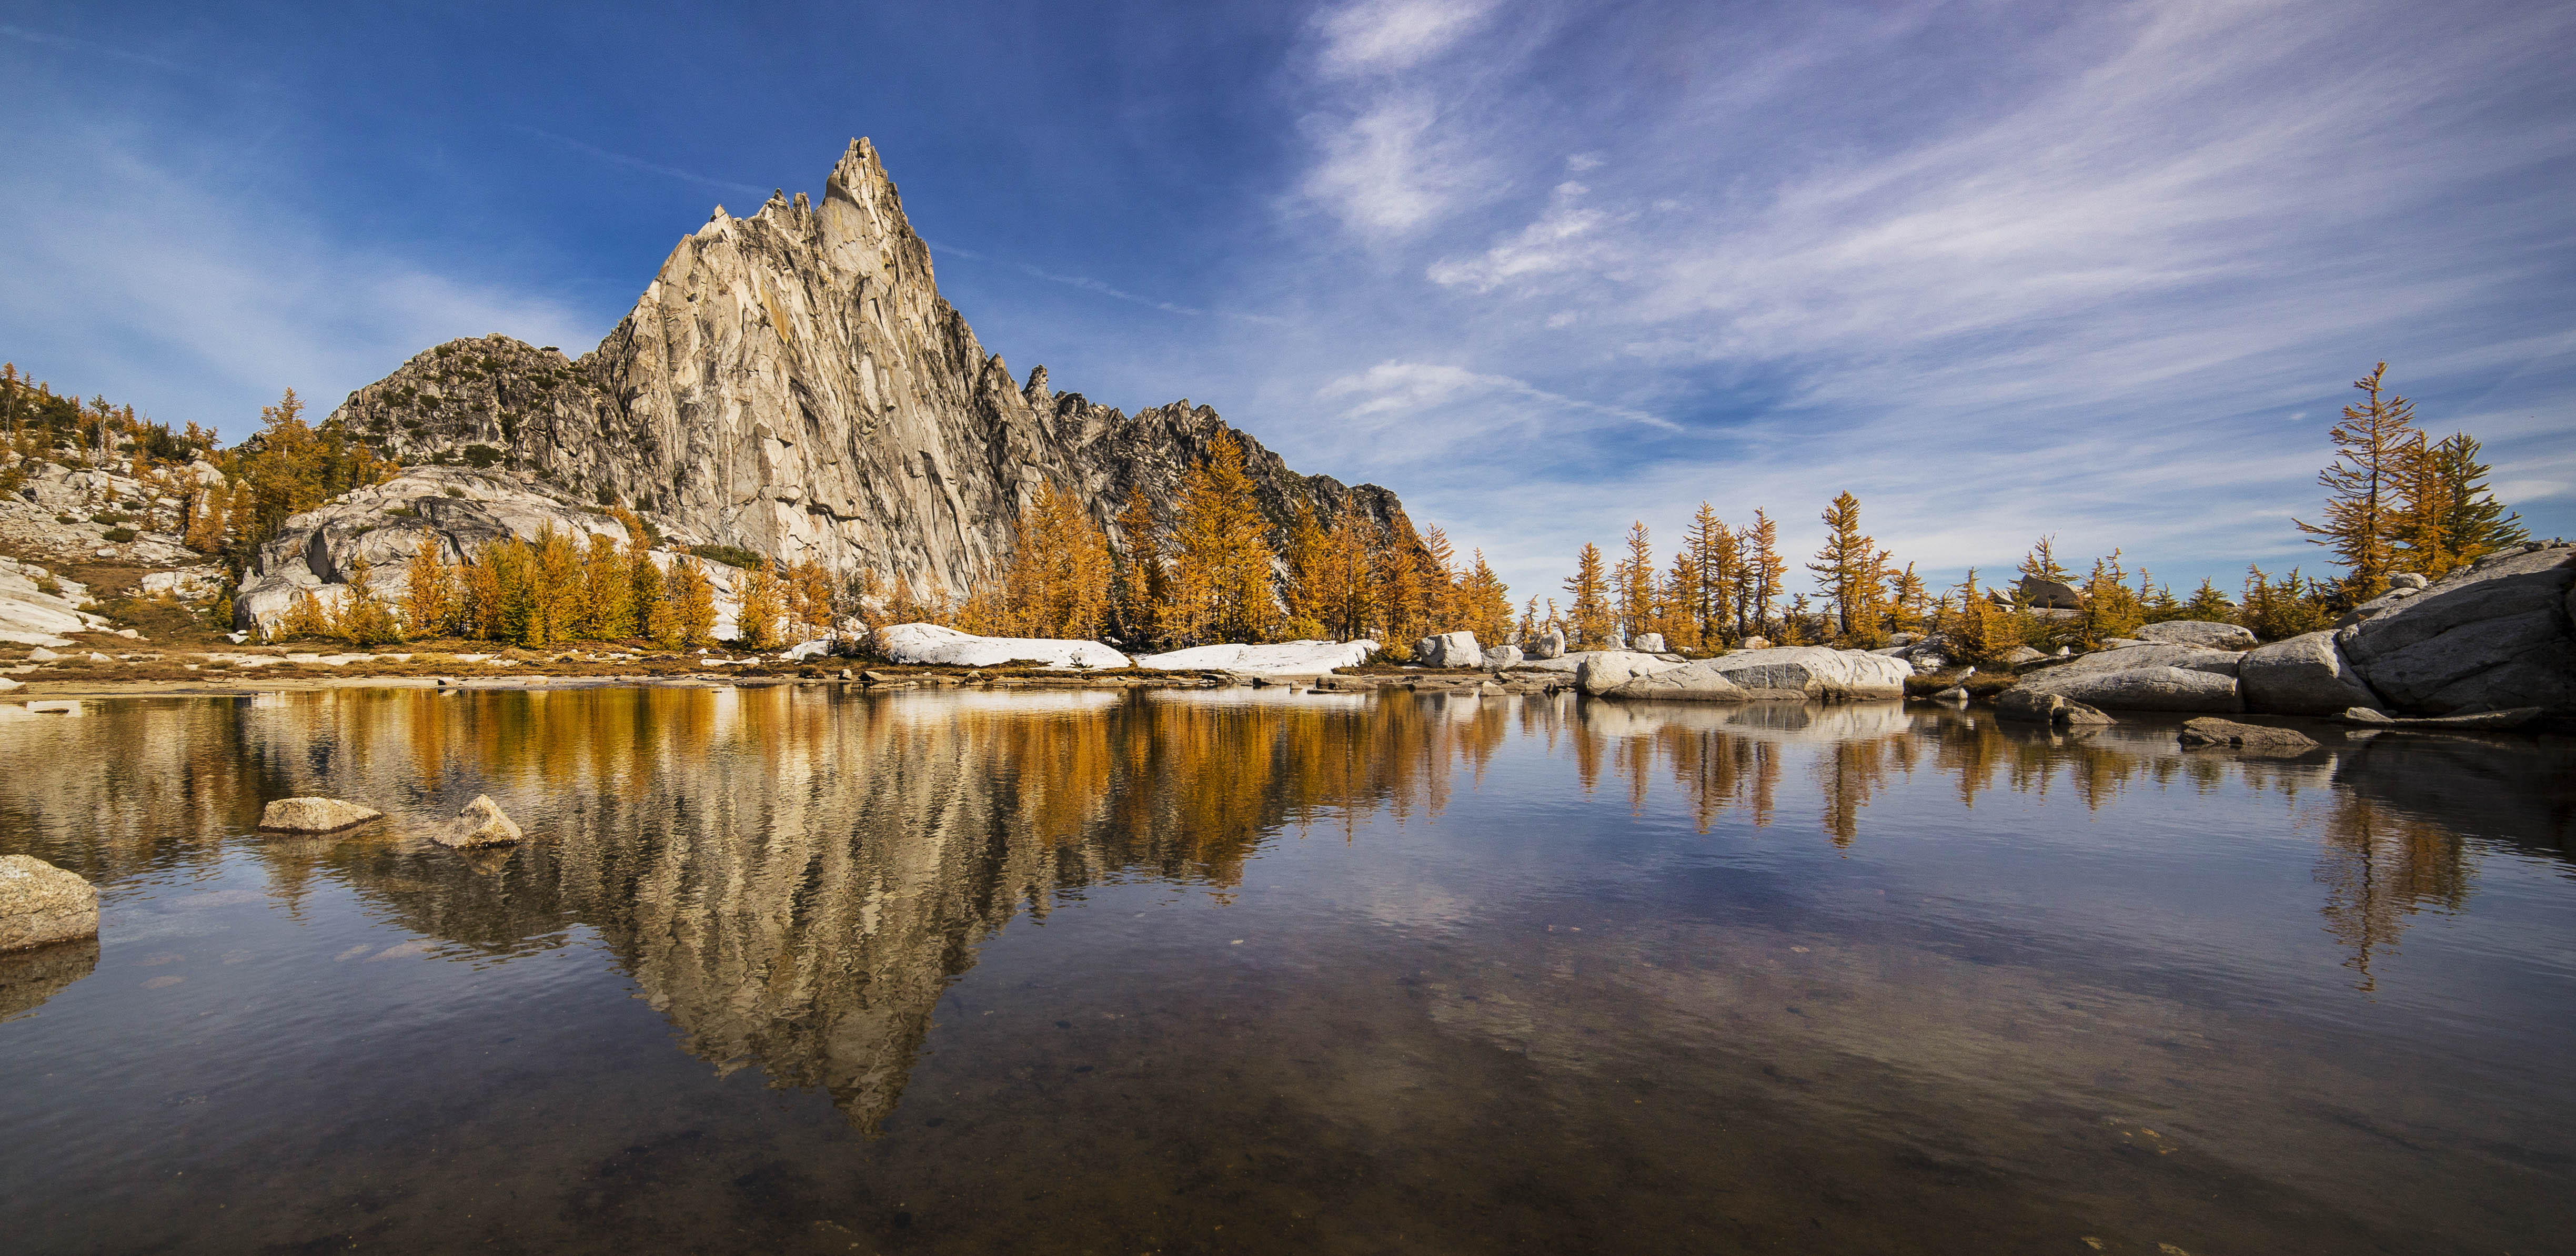 Fall Wallpaper Note 8 The Enchantments Andy Porter Images